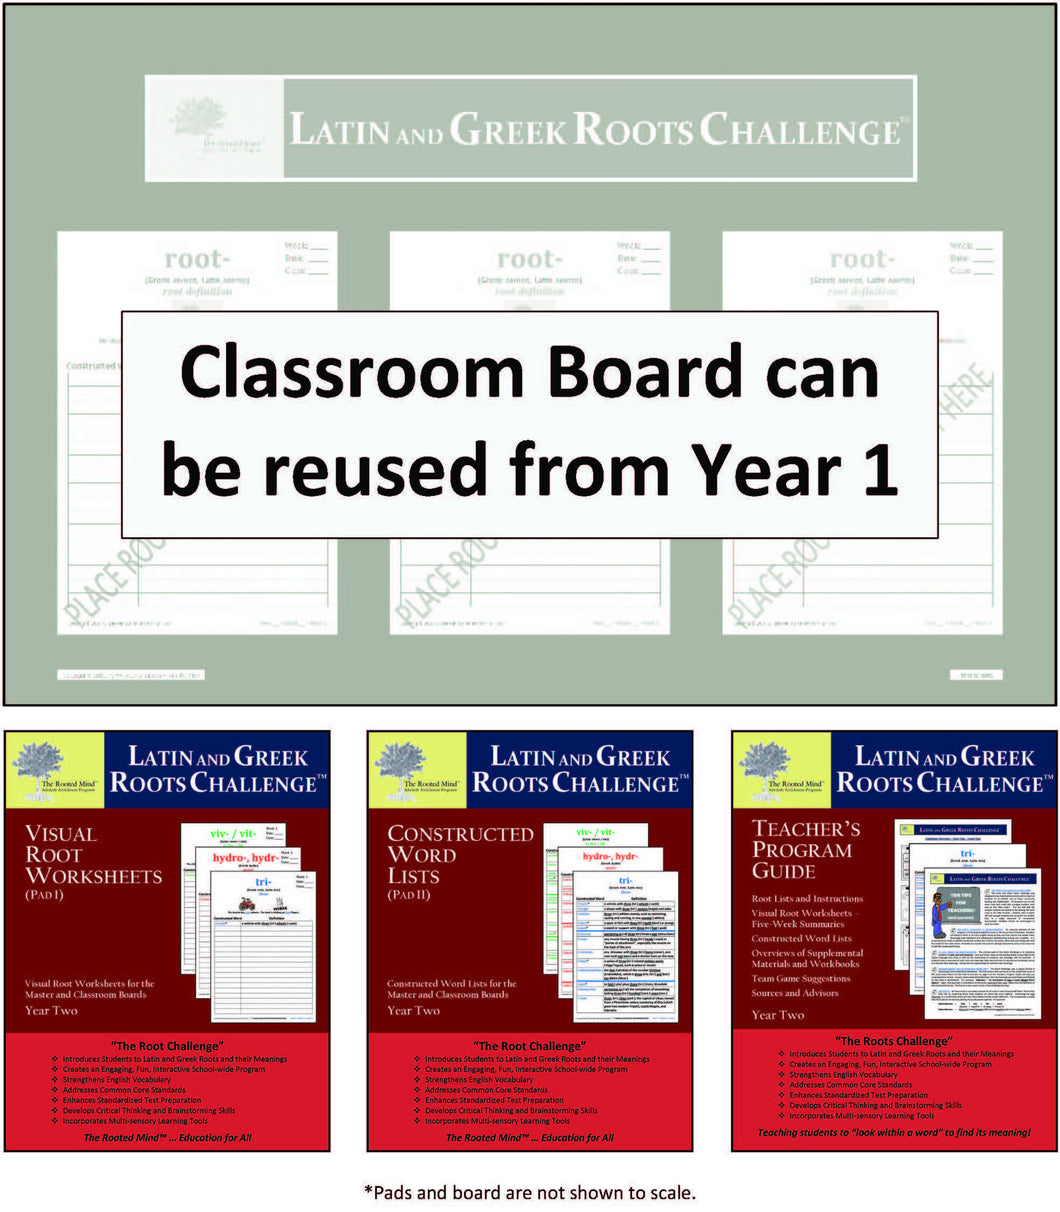 Classroom Board Kit - Year 2   (Grades 2 - 8+)